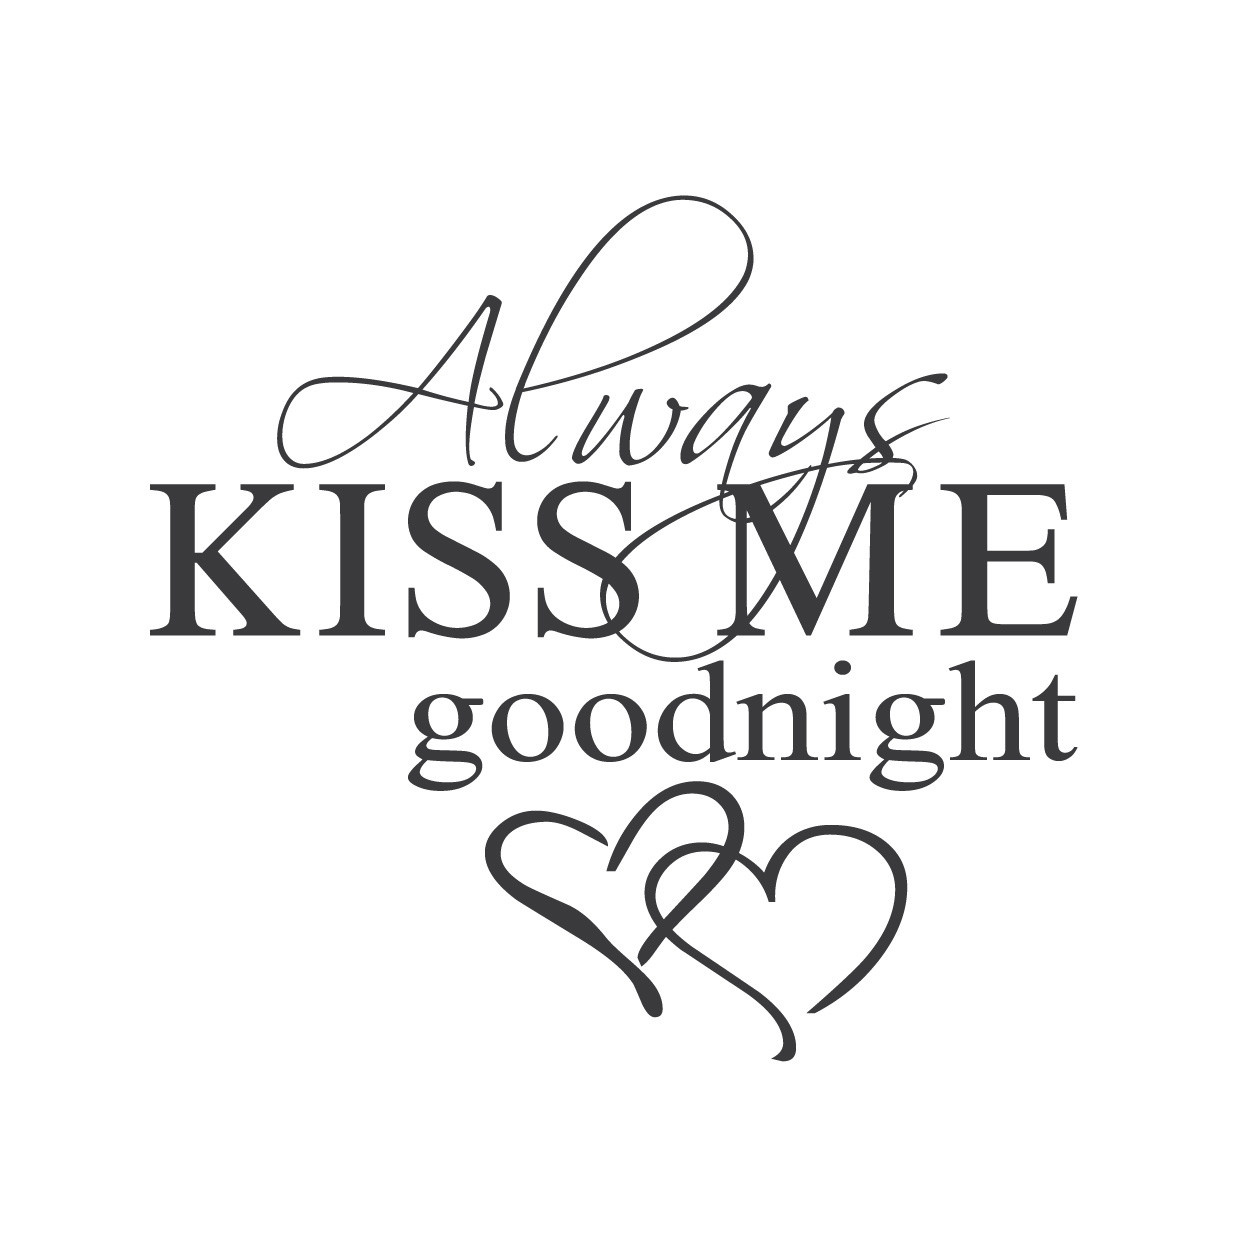 I Want To Cuddle With You Quotes: Romantic Good Night Quotes. QuotesGram